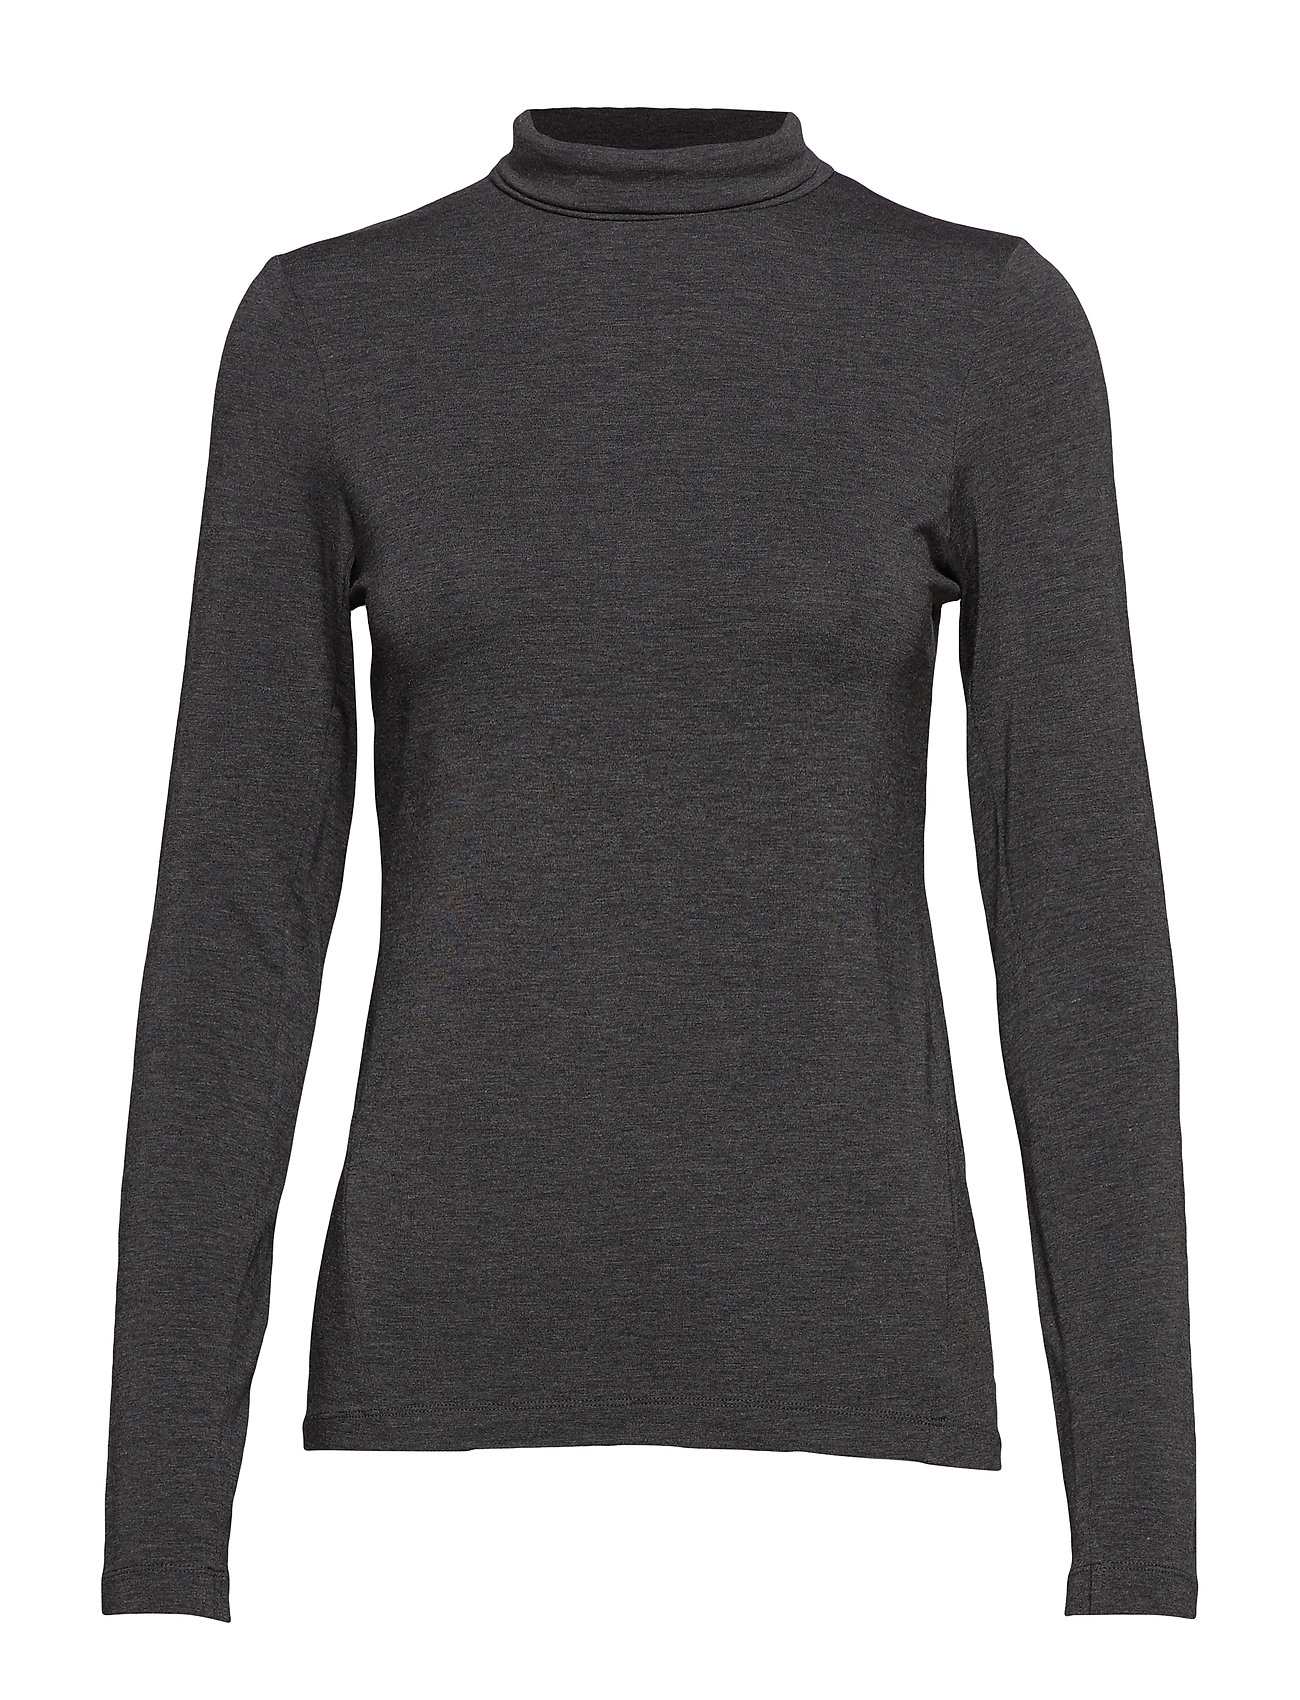 Venetia Cuff MelFrench Jersey Split Topcharcoal Connection RjL354qA